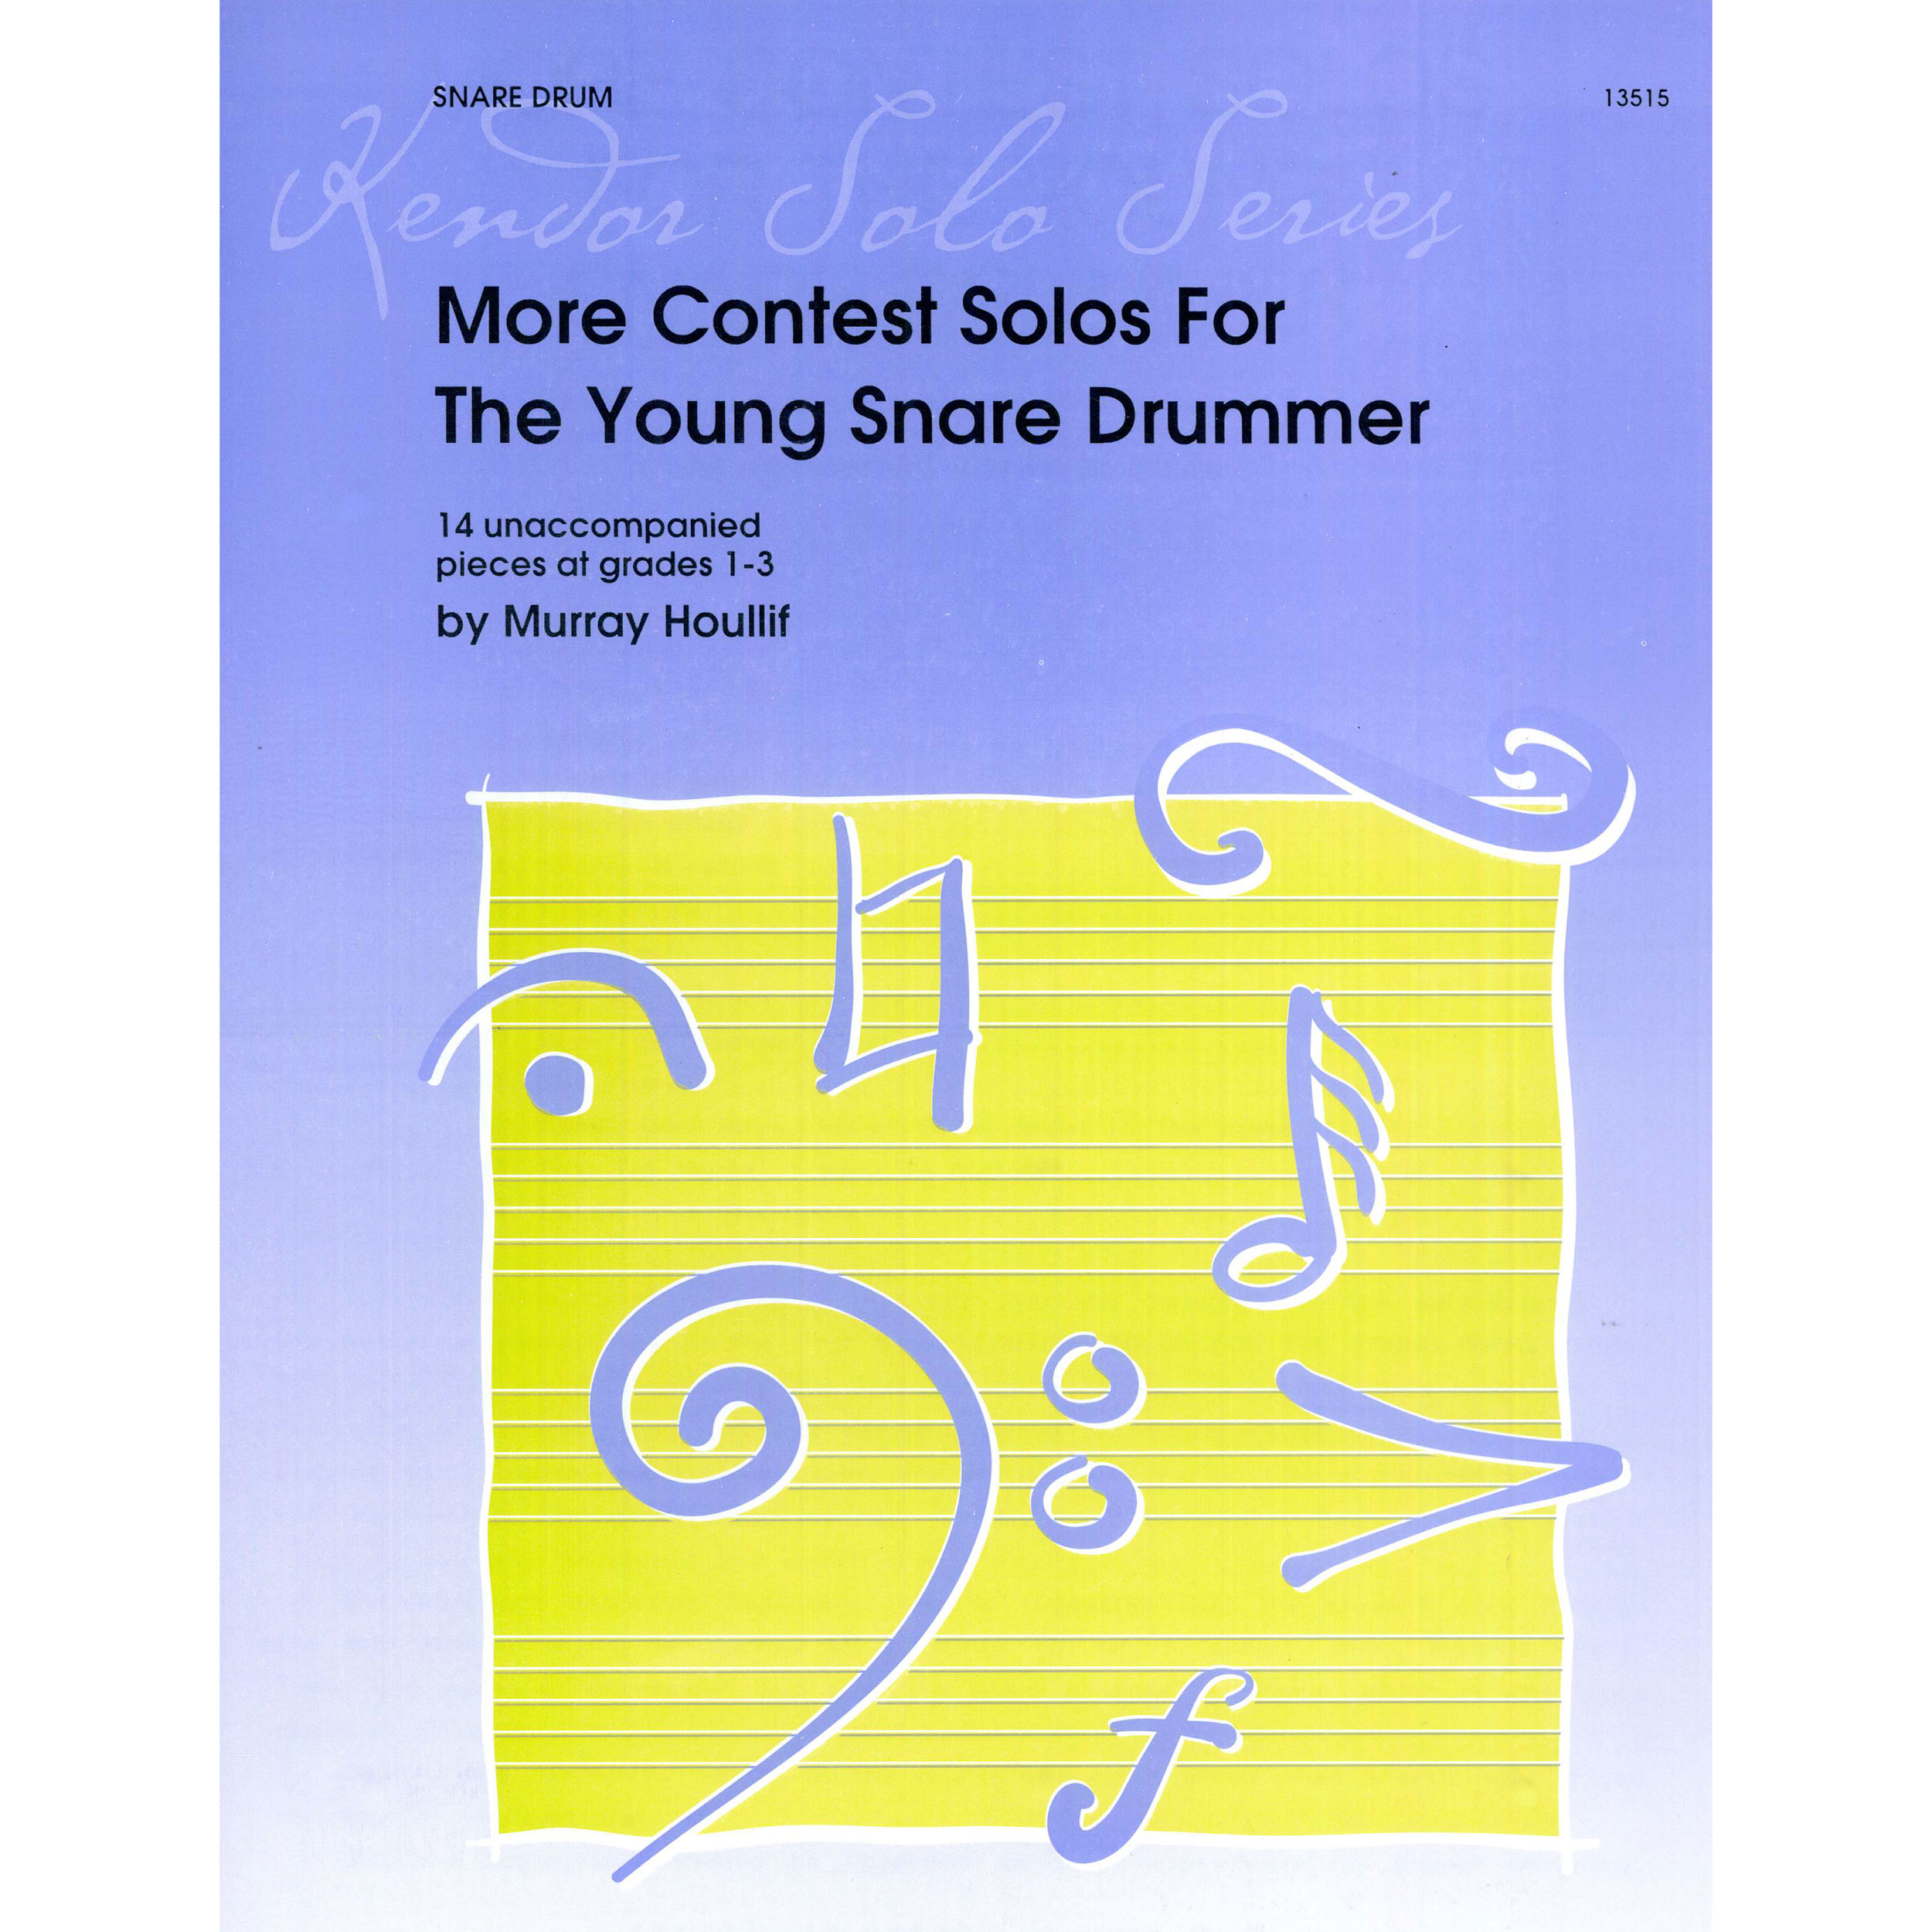 More Contest Solos for the Young Snare Drummer by Murray Houllif